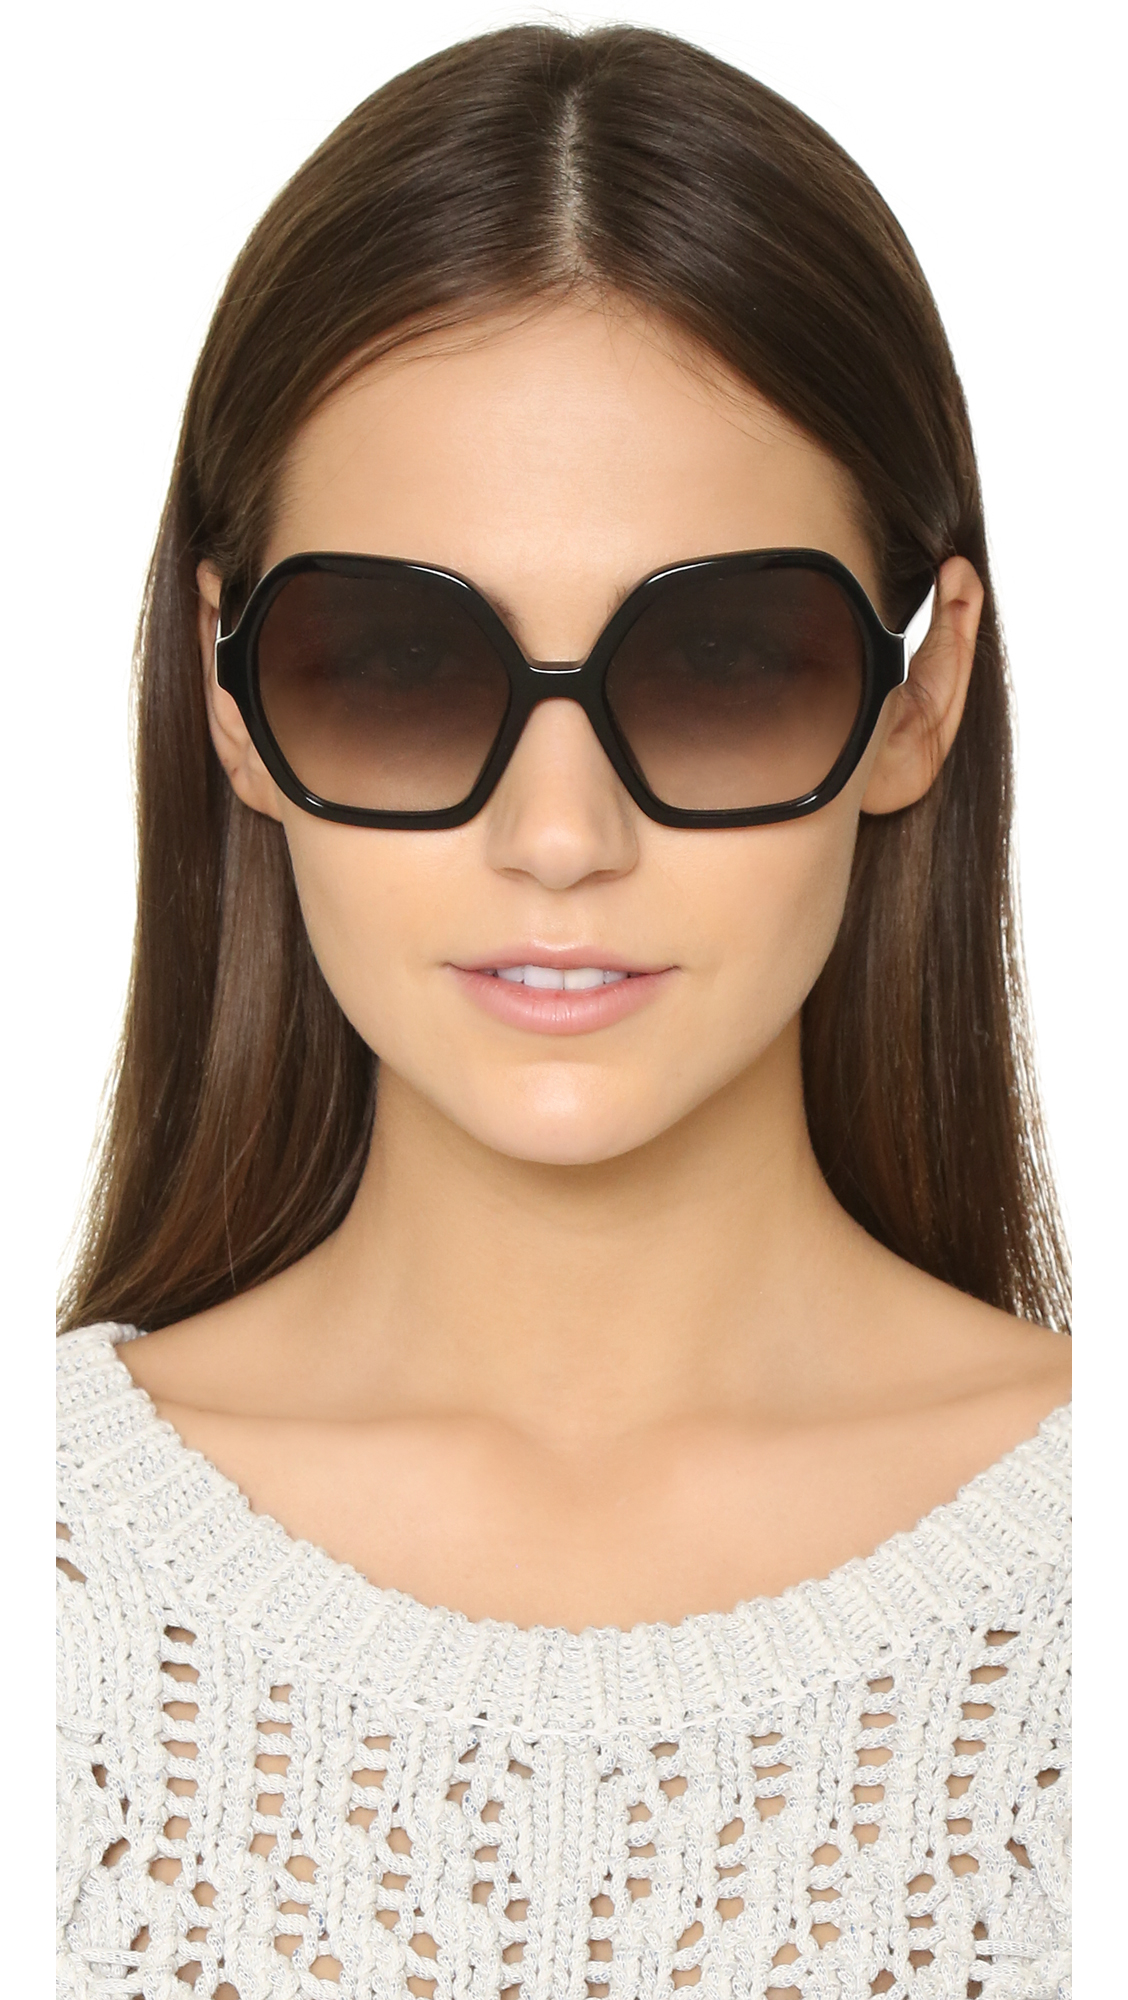 Prada Sunglasses Oversized